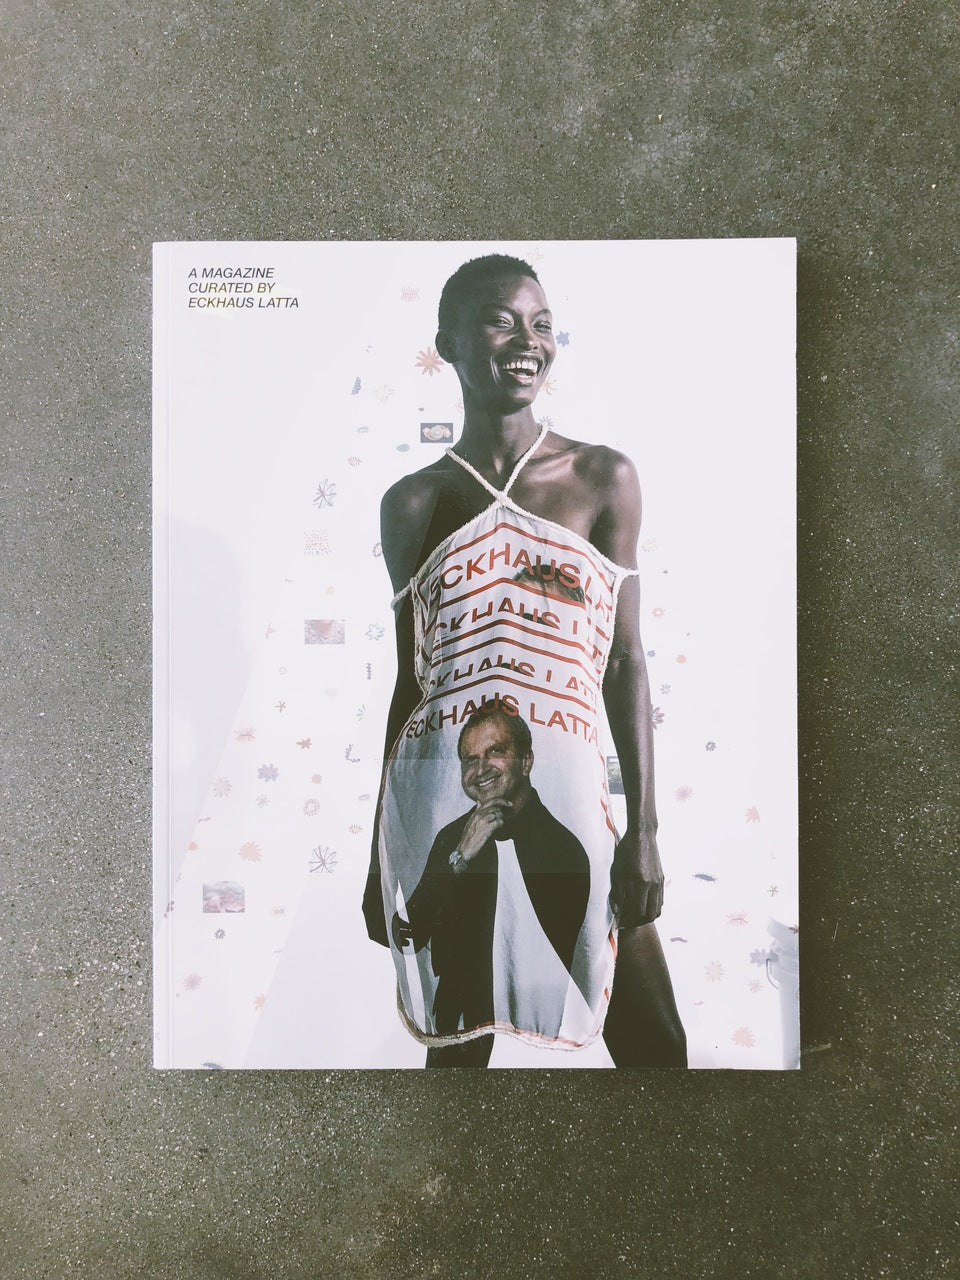 A Magazine Curated By, The Eckhaus Latta Edition available at LCD